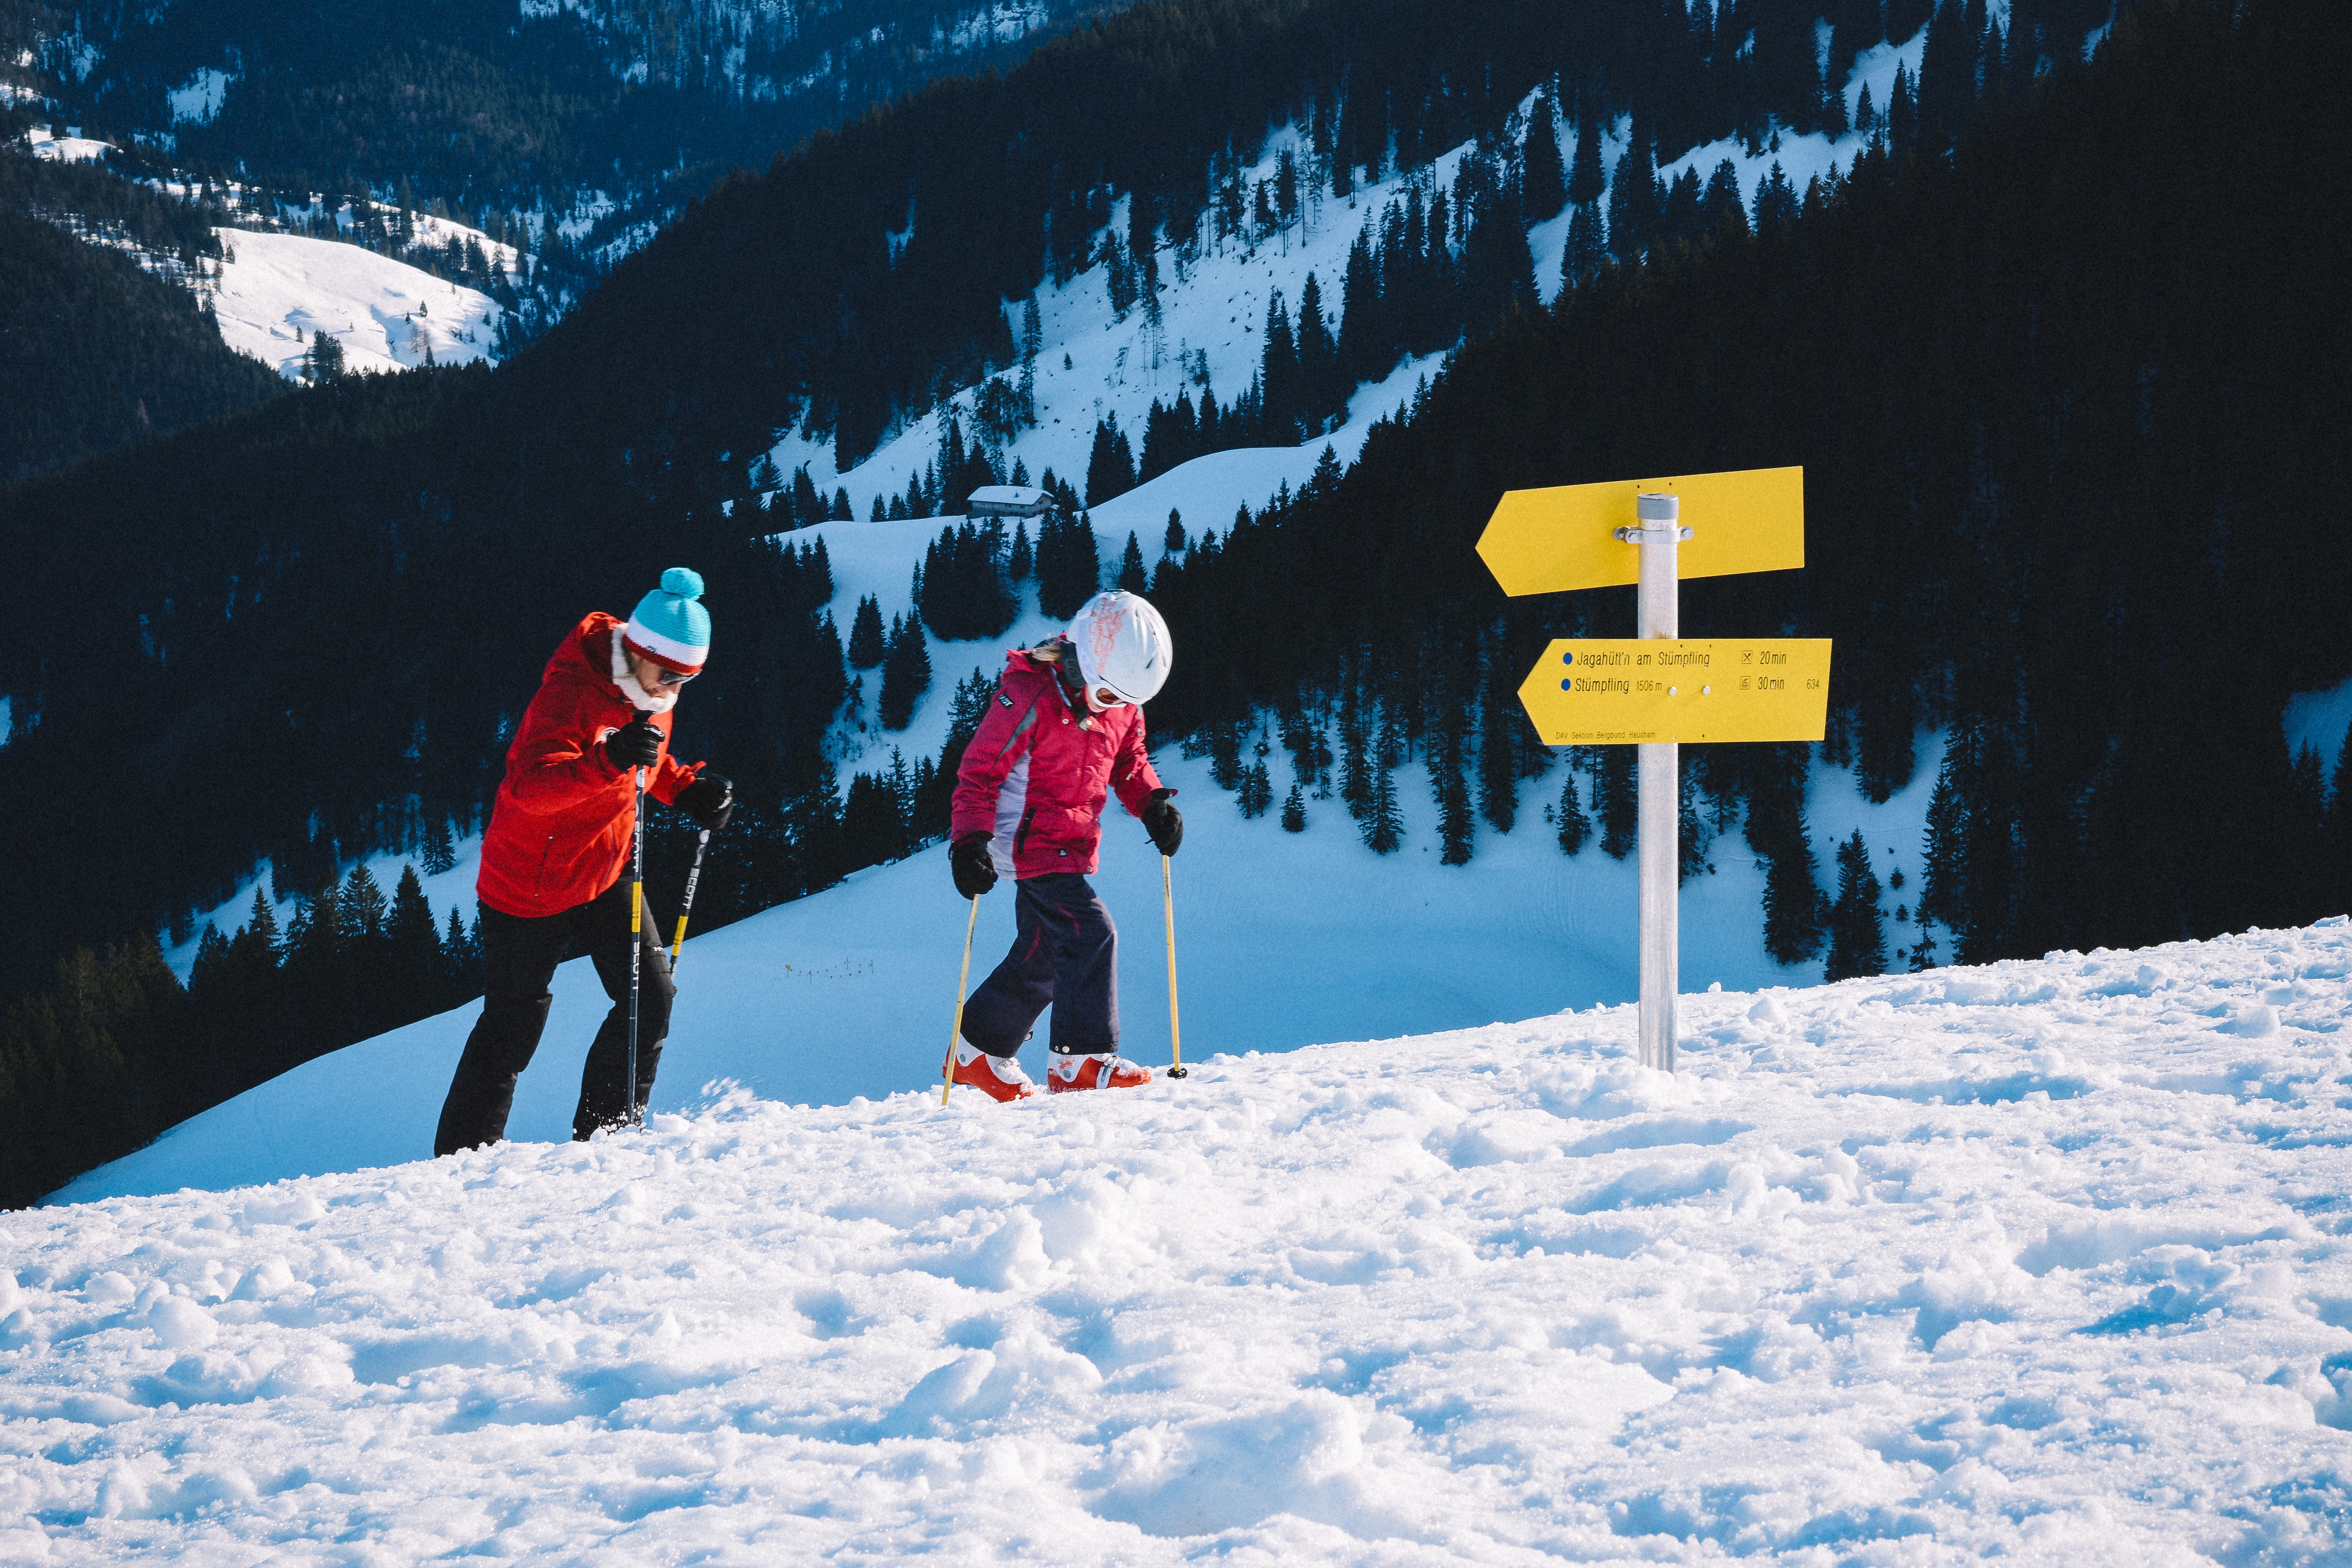 two person playing snow skis